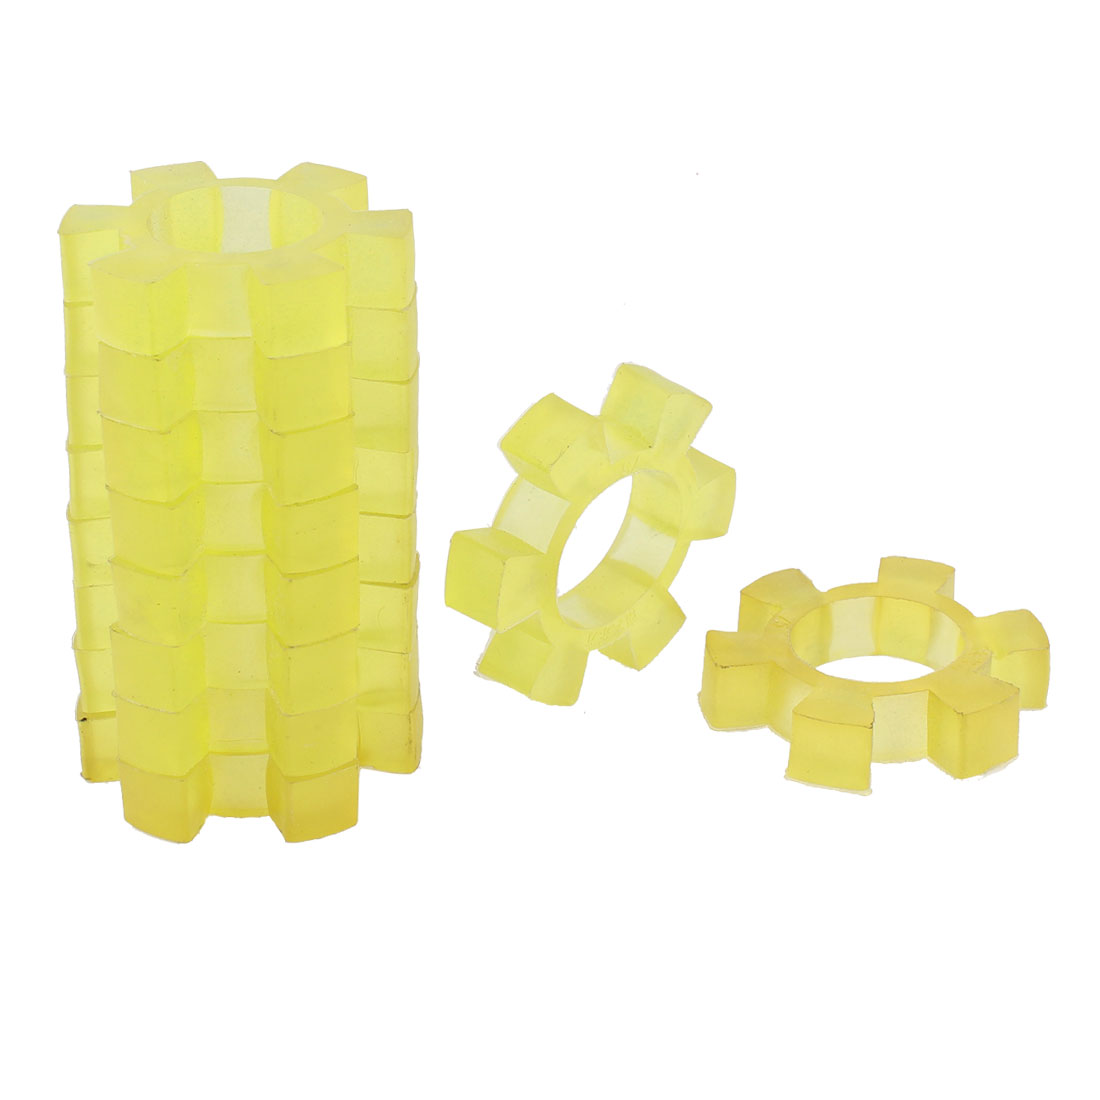 14mm Thickness Flexible Plastic Coupling Coupler Damper Yellow 10 Pcs